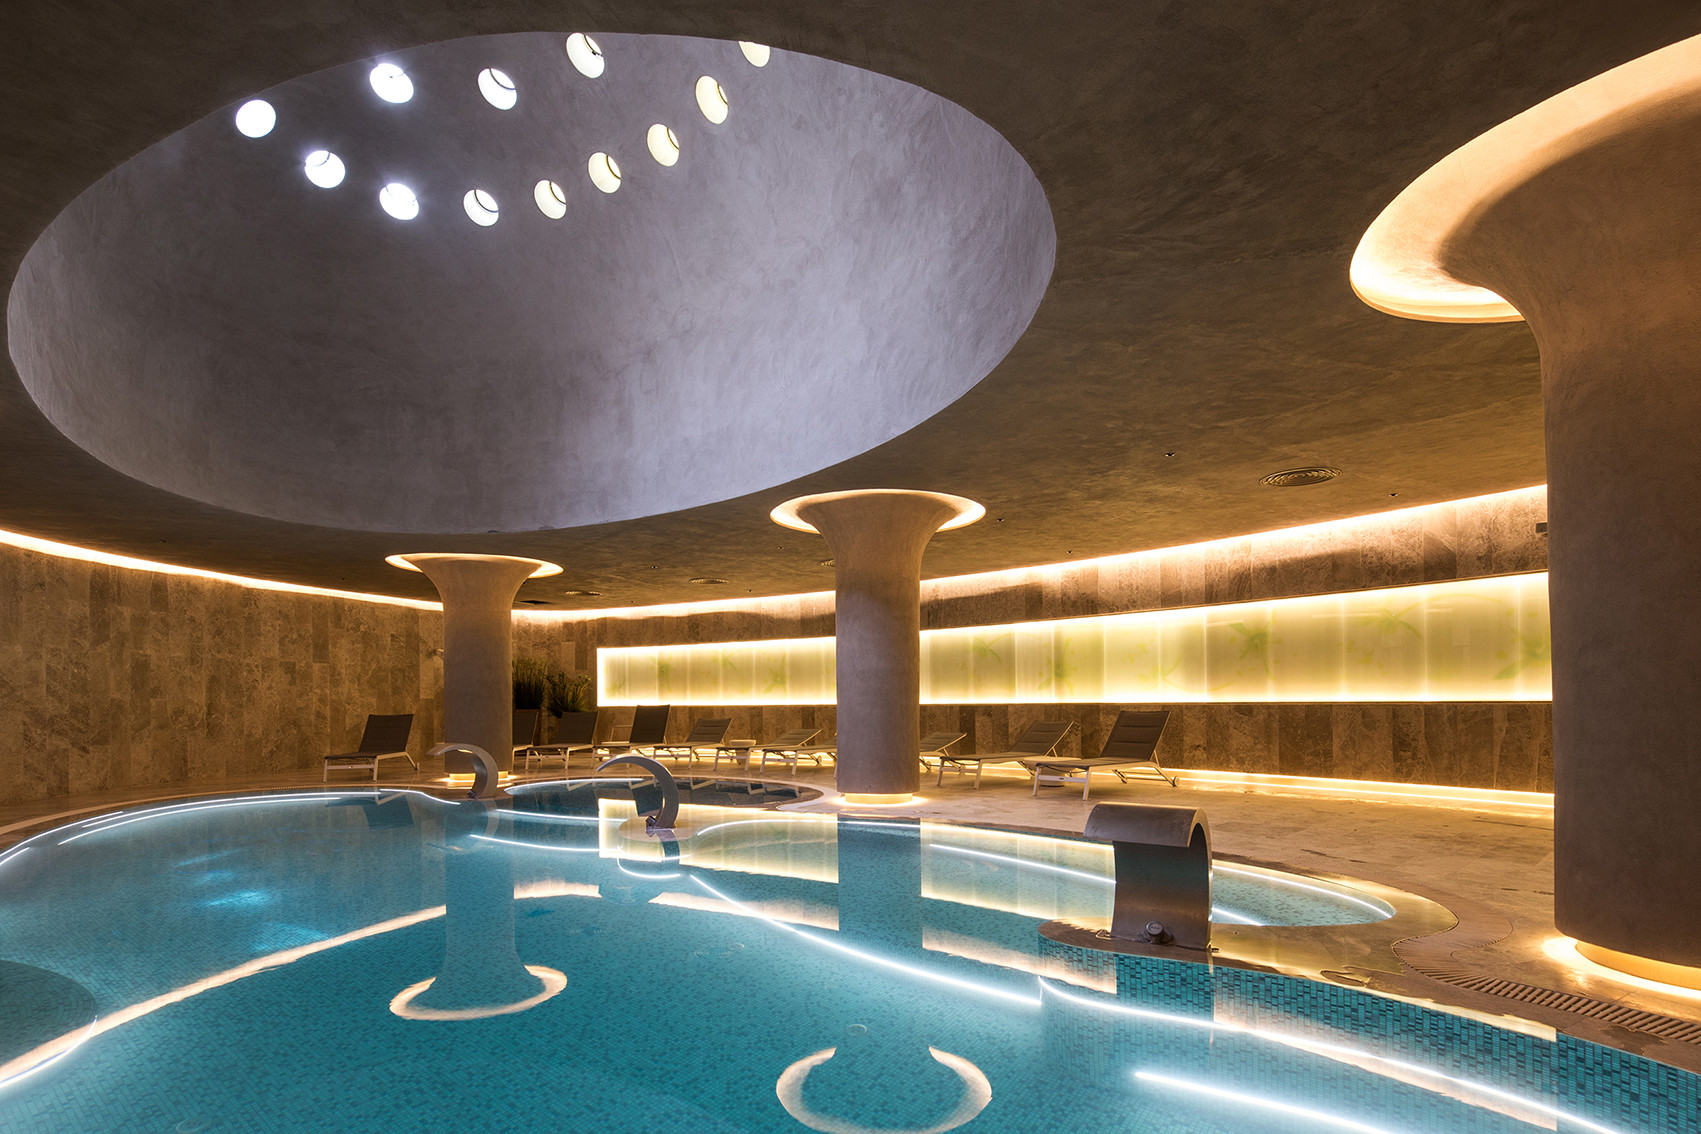 Eskisehir hotel and spa gad architecture archdaily for Spa design hotel